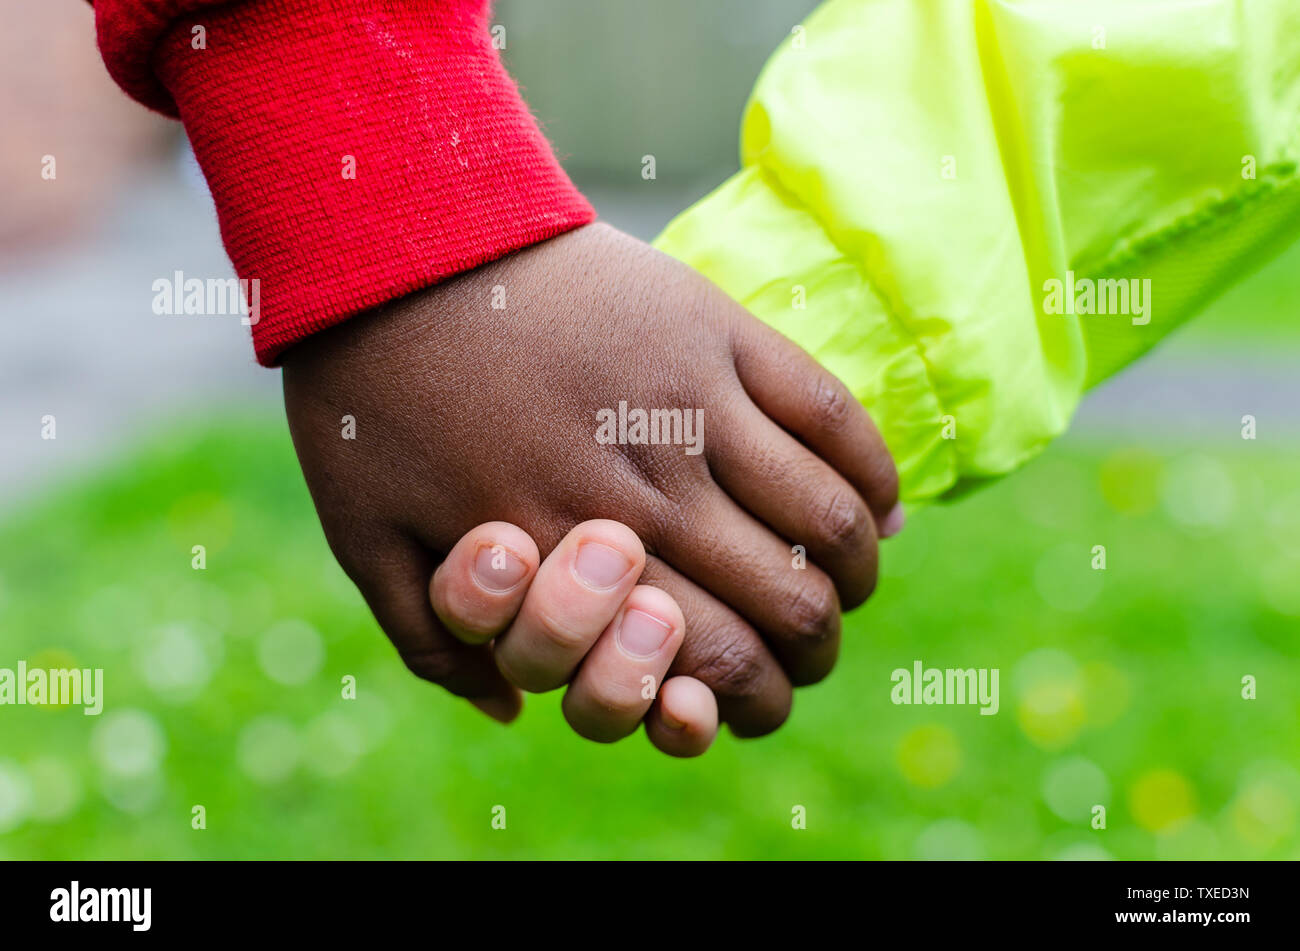 Two children of different races holding hands together. Photo shows friendship, equality and diversity. One Caucasian the other is dark (black). - Stock Image